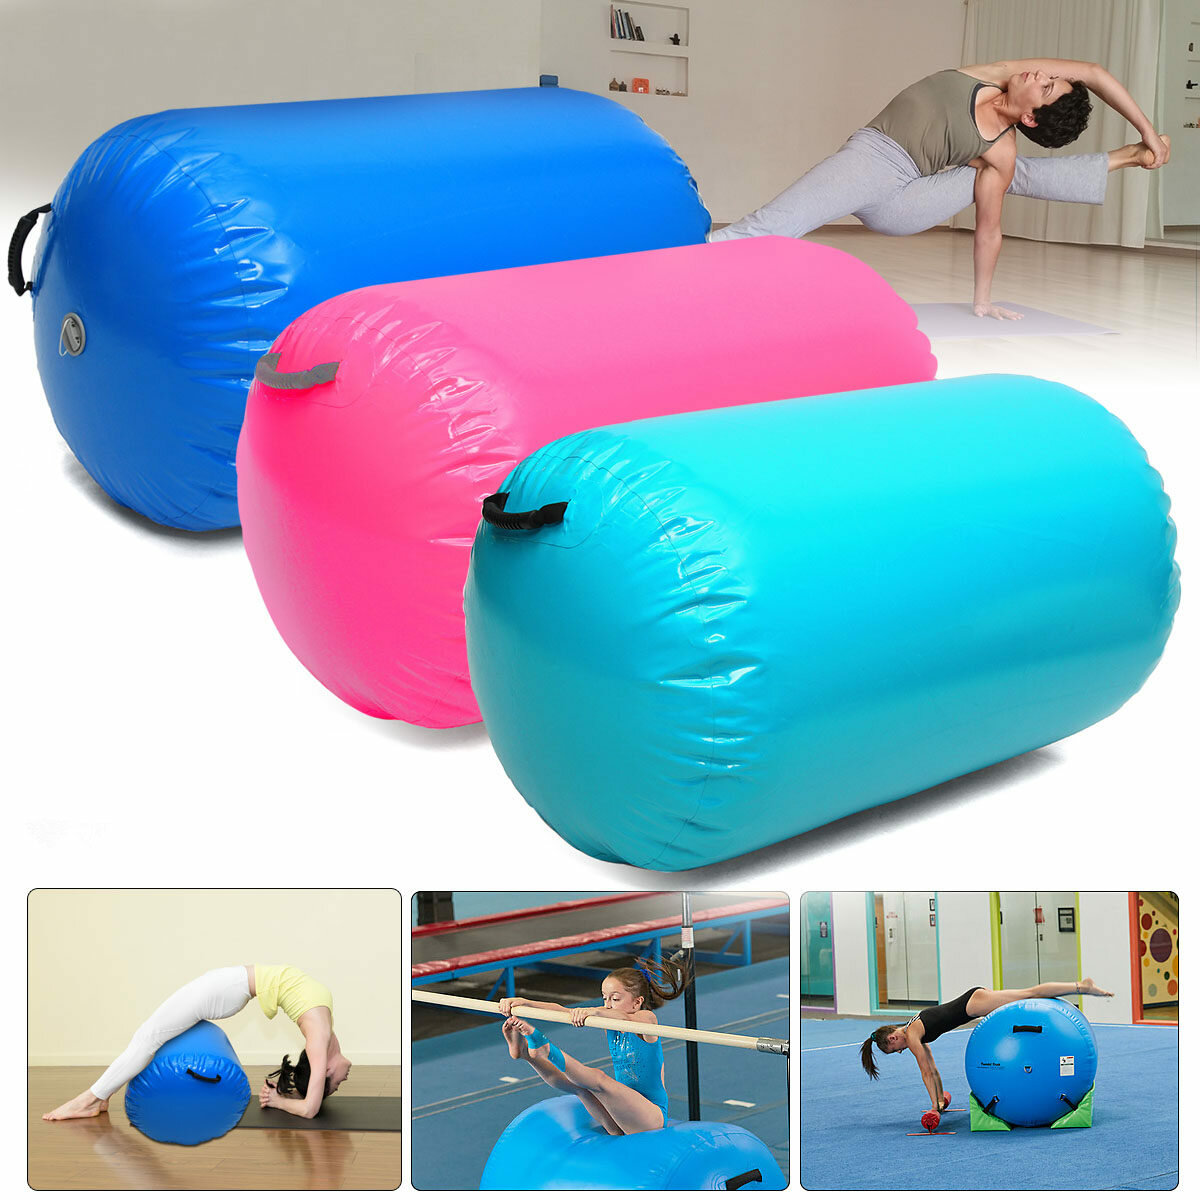 Gymtastic Professional Inflatable Air Track